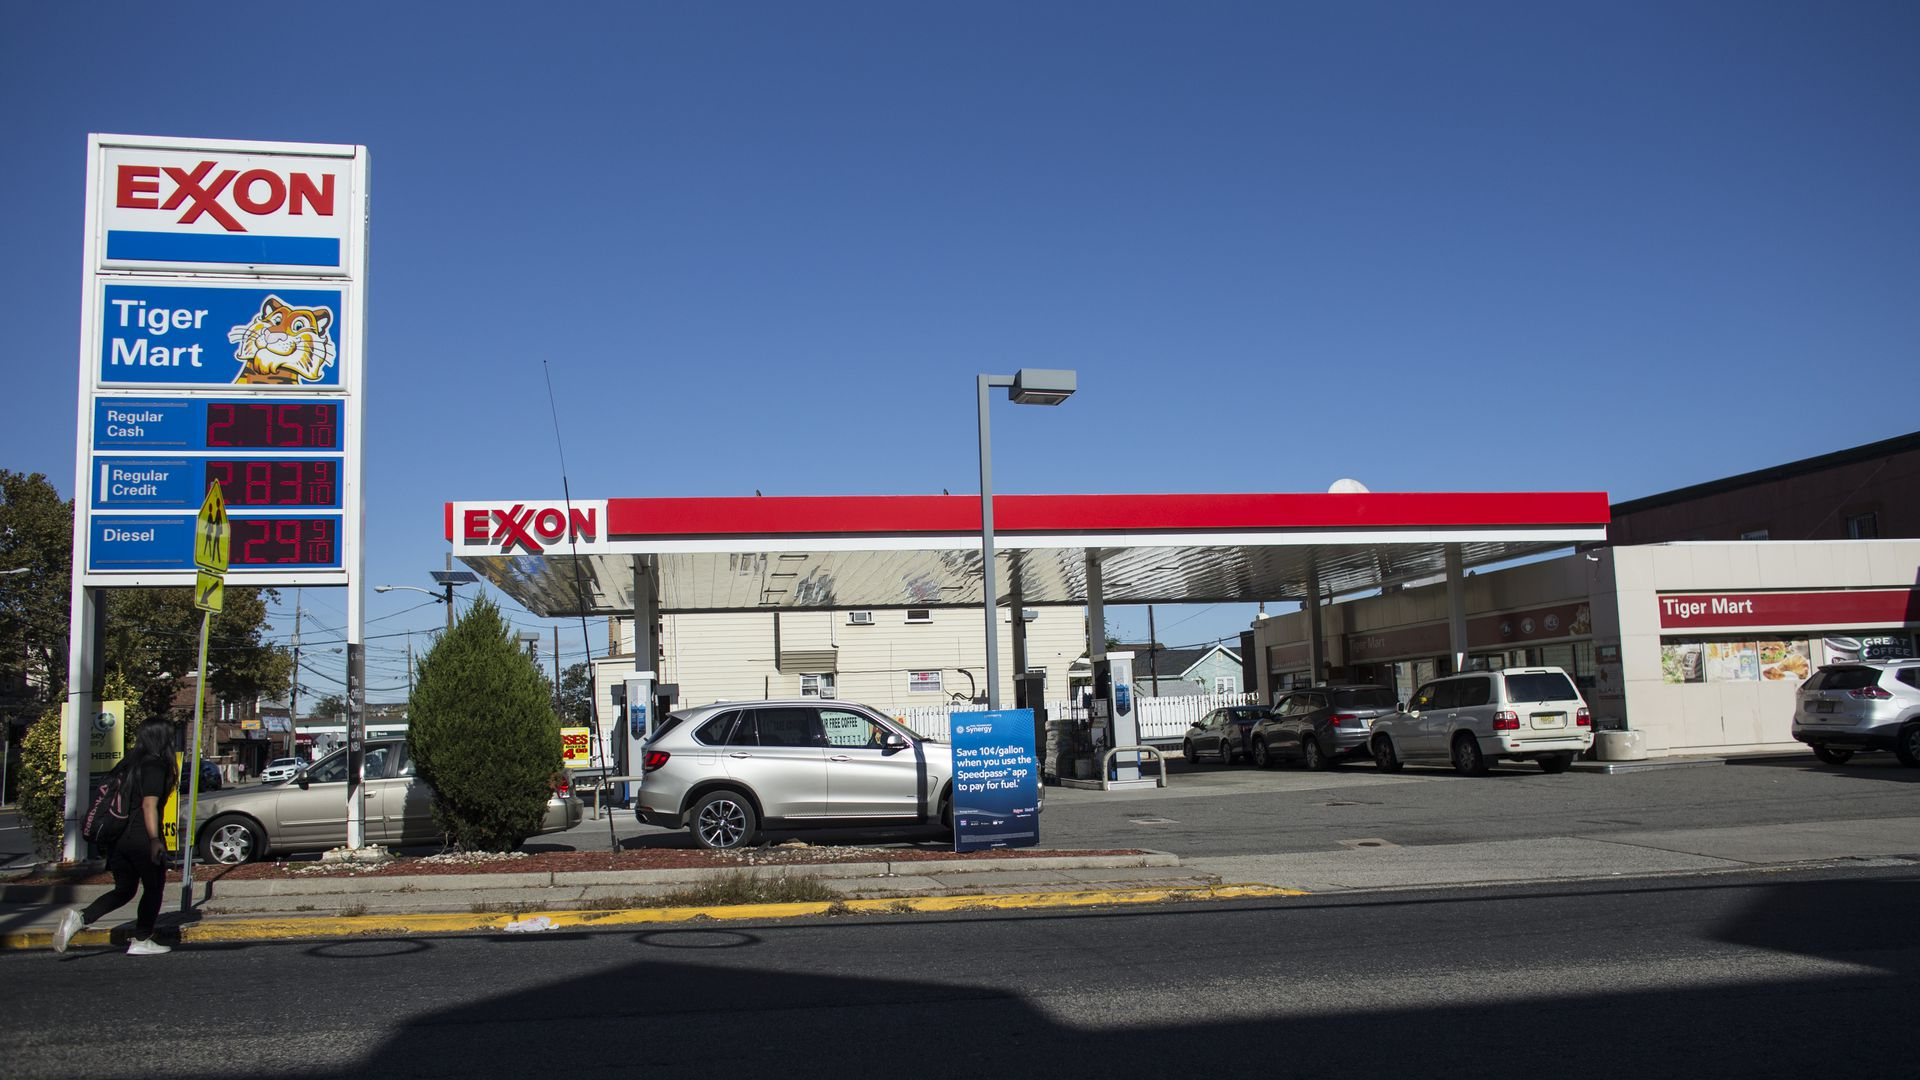 In this image, an ExxonMobil gas station is pictured behind an empty street.